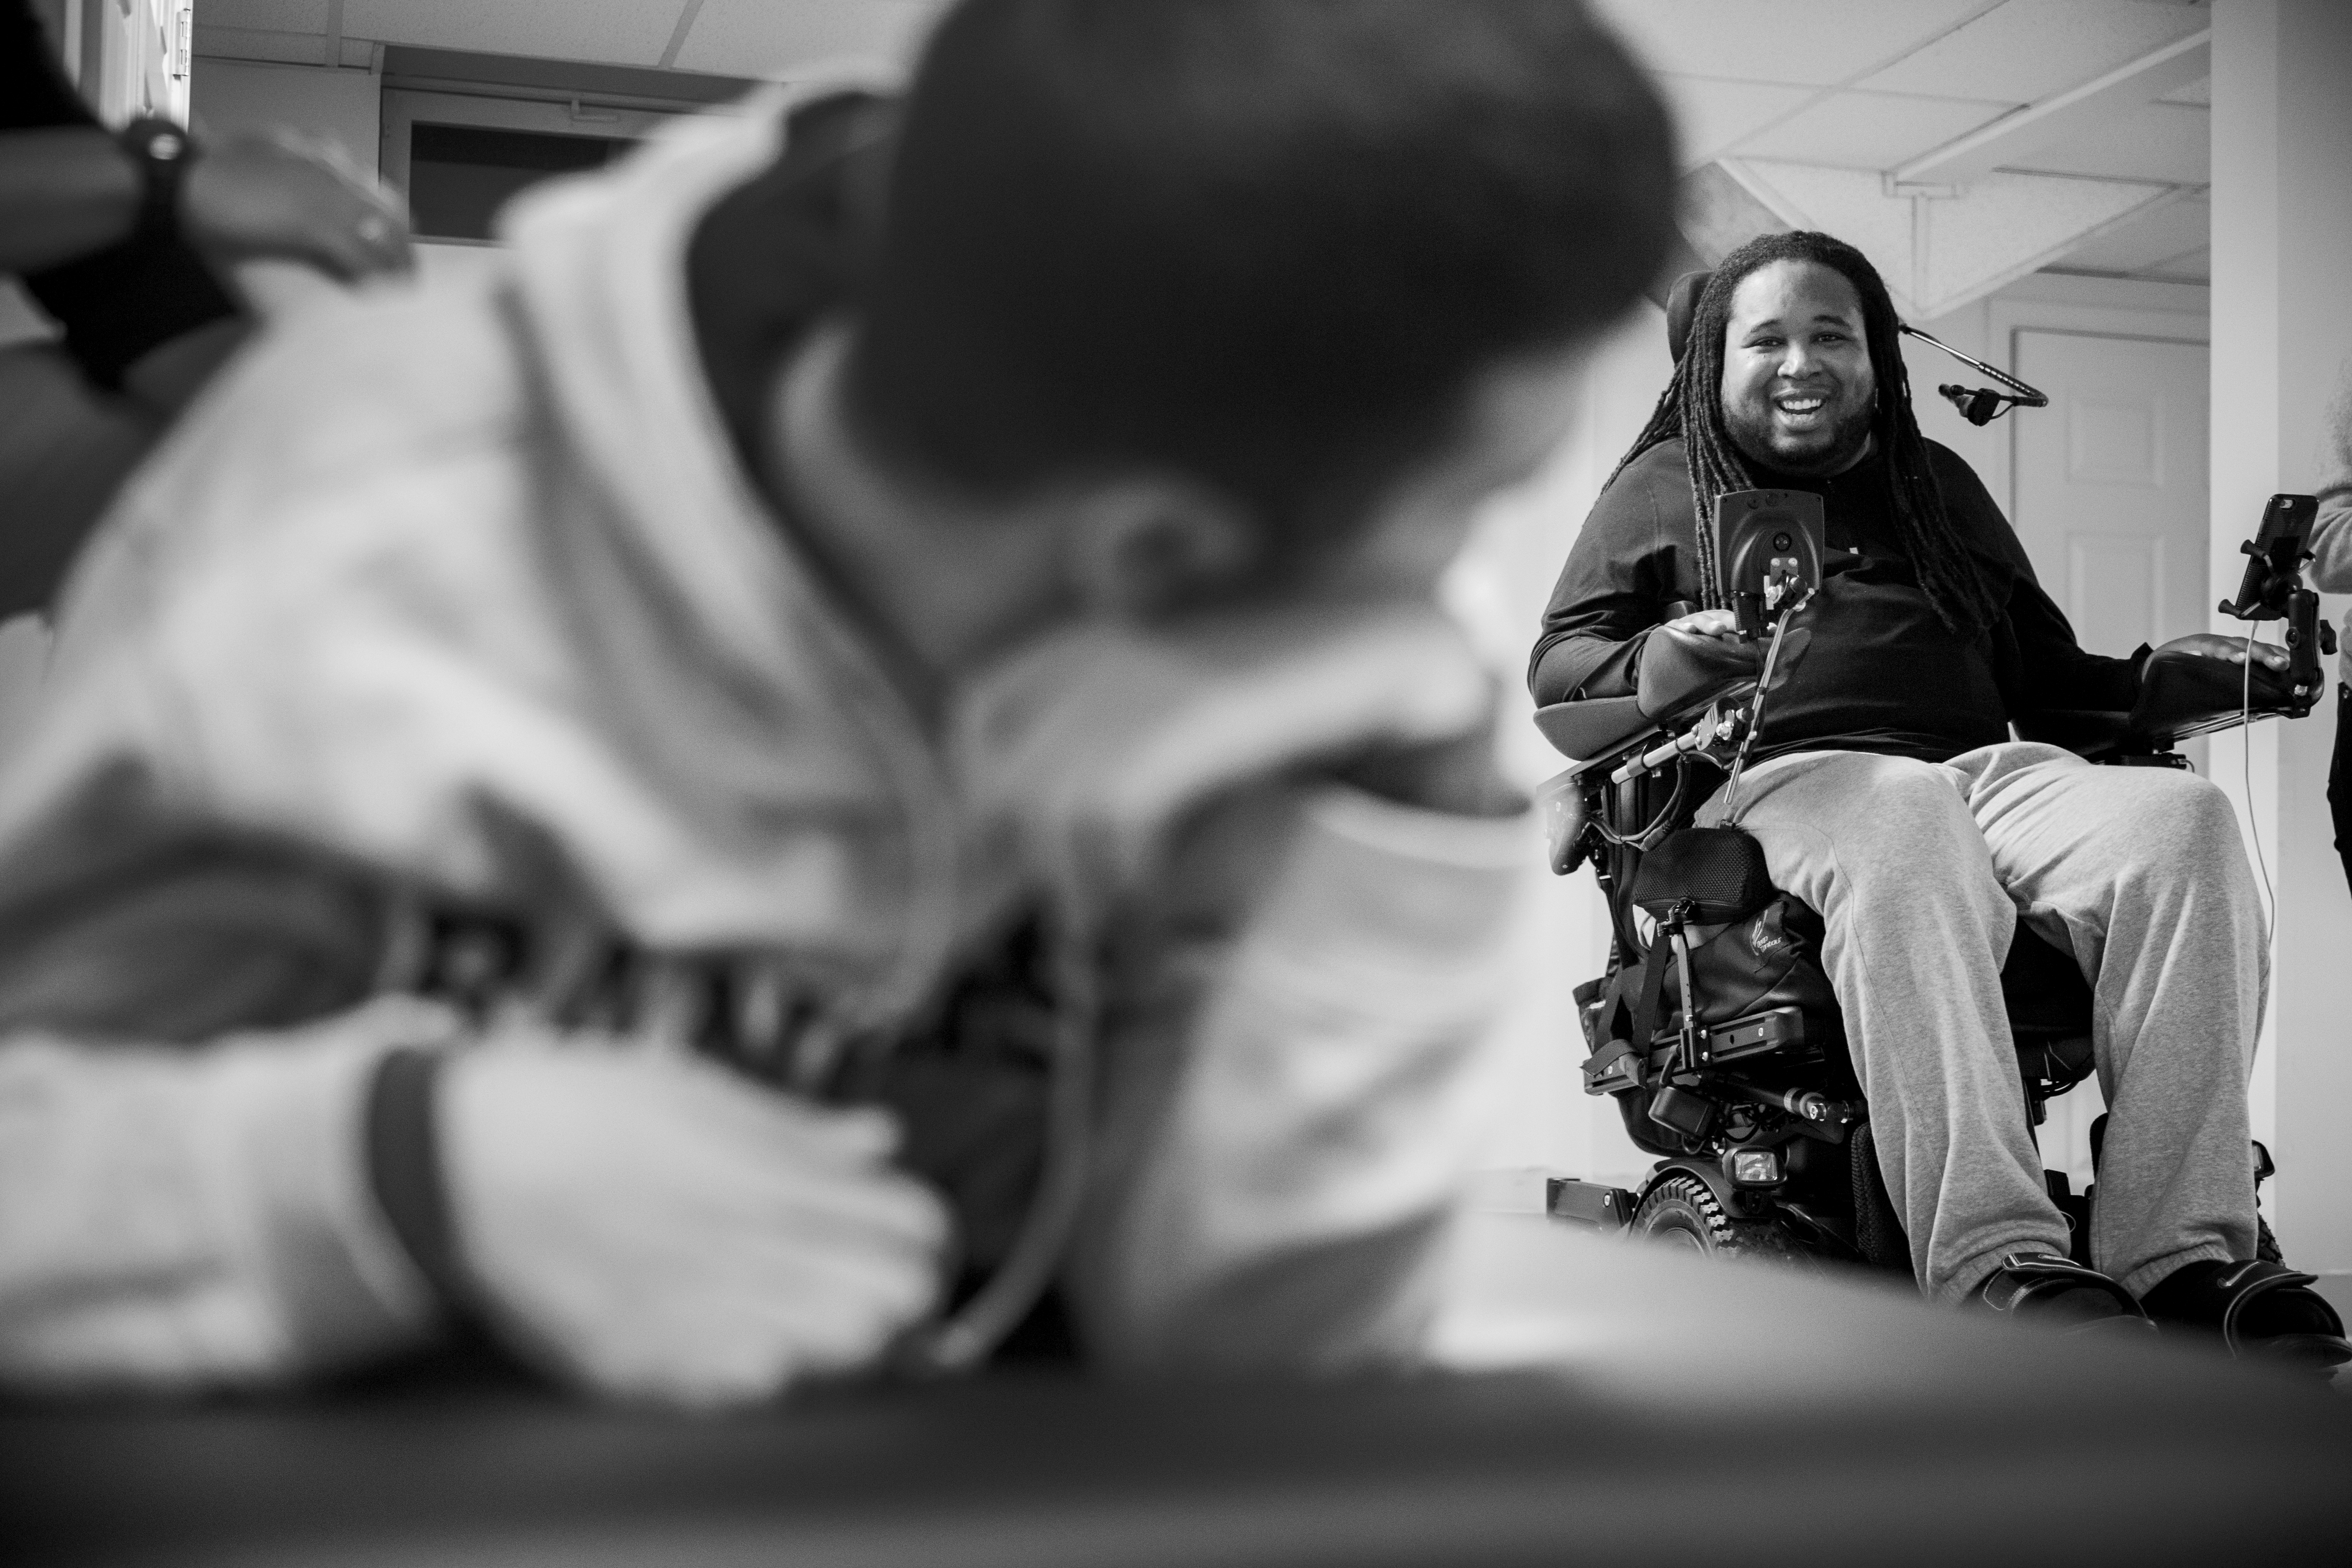 Mikey Nichols and Eric LeGrand at Mickey's house in Monroe, New Jersey on October 10, 2016.(Photo by Taylor Baucom/The Players' Tribune)